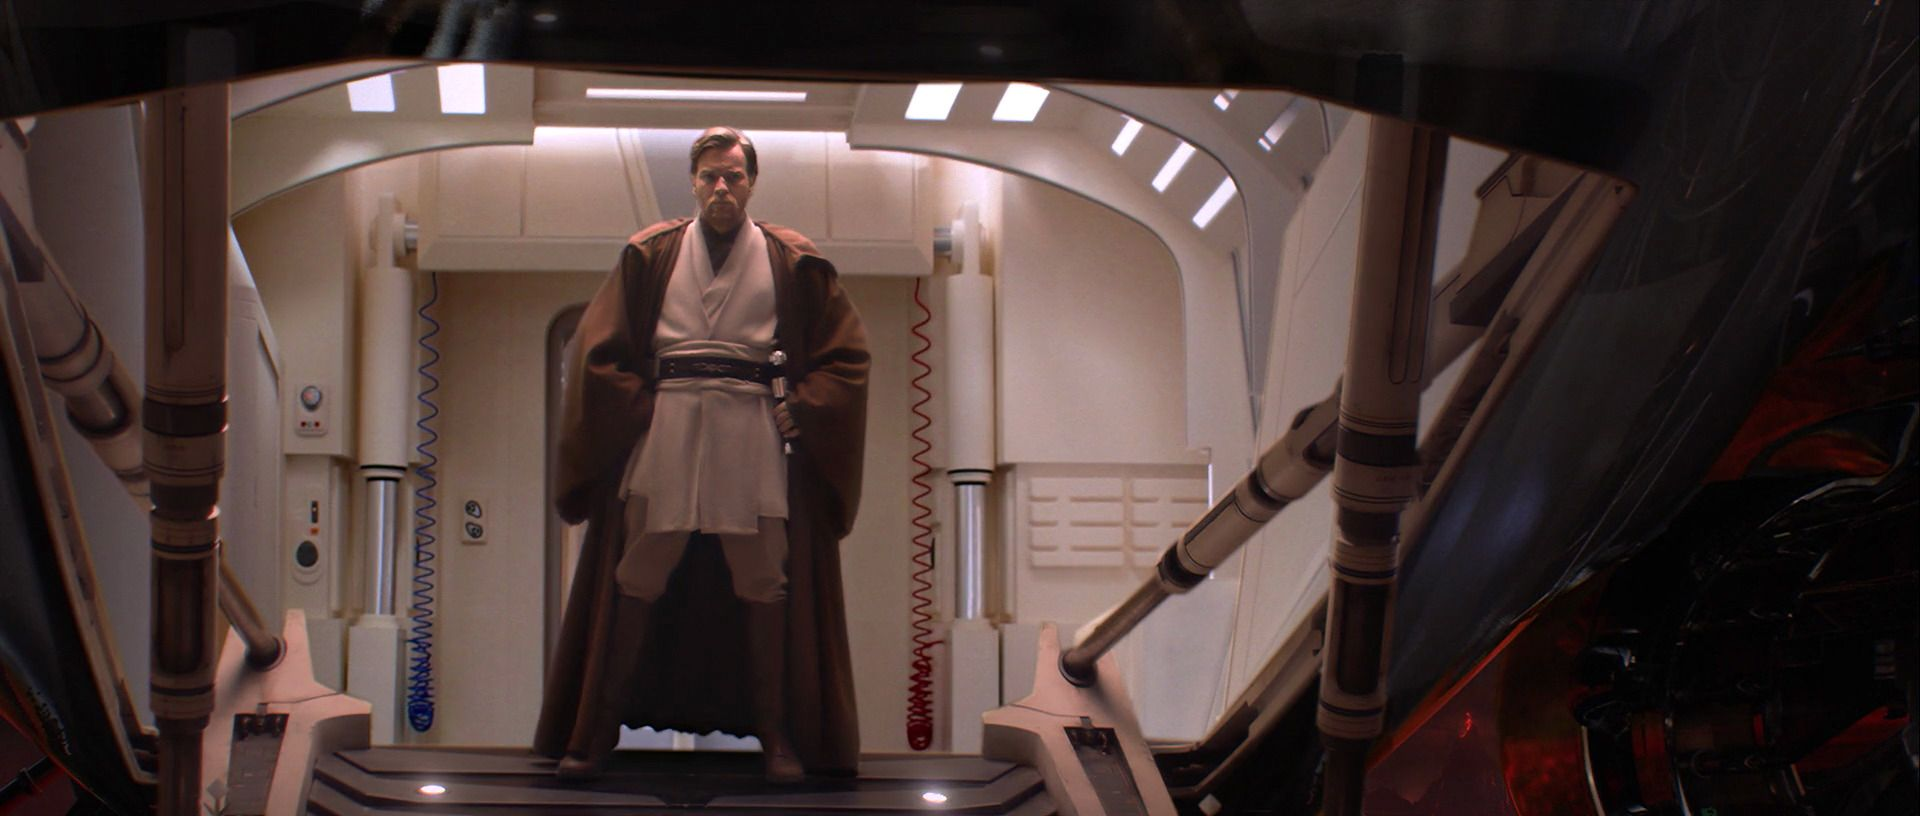 Starwars3 Movie Screencaps 816